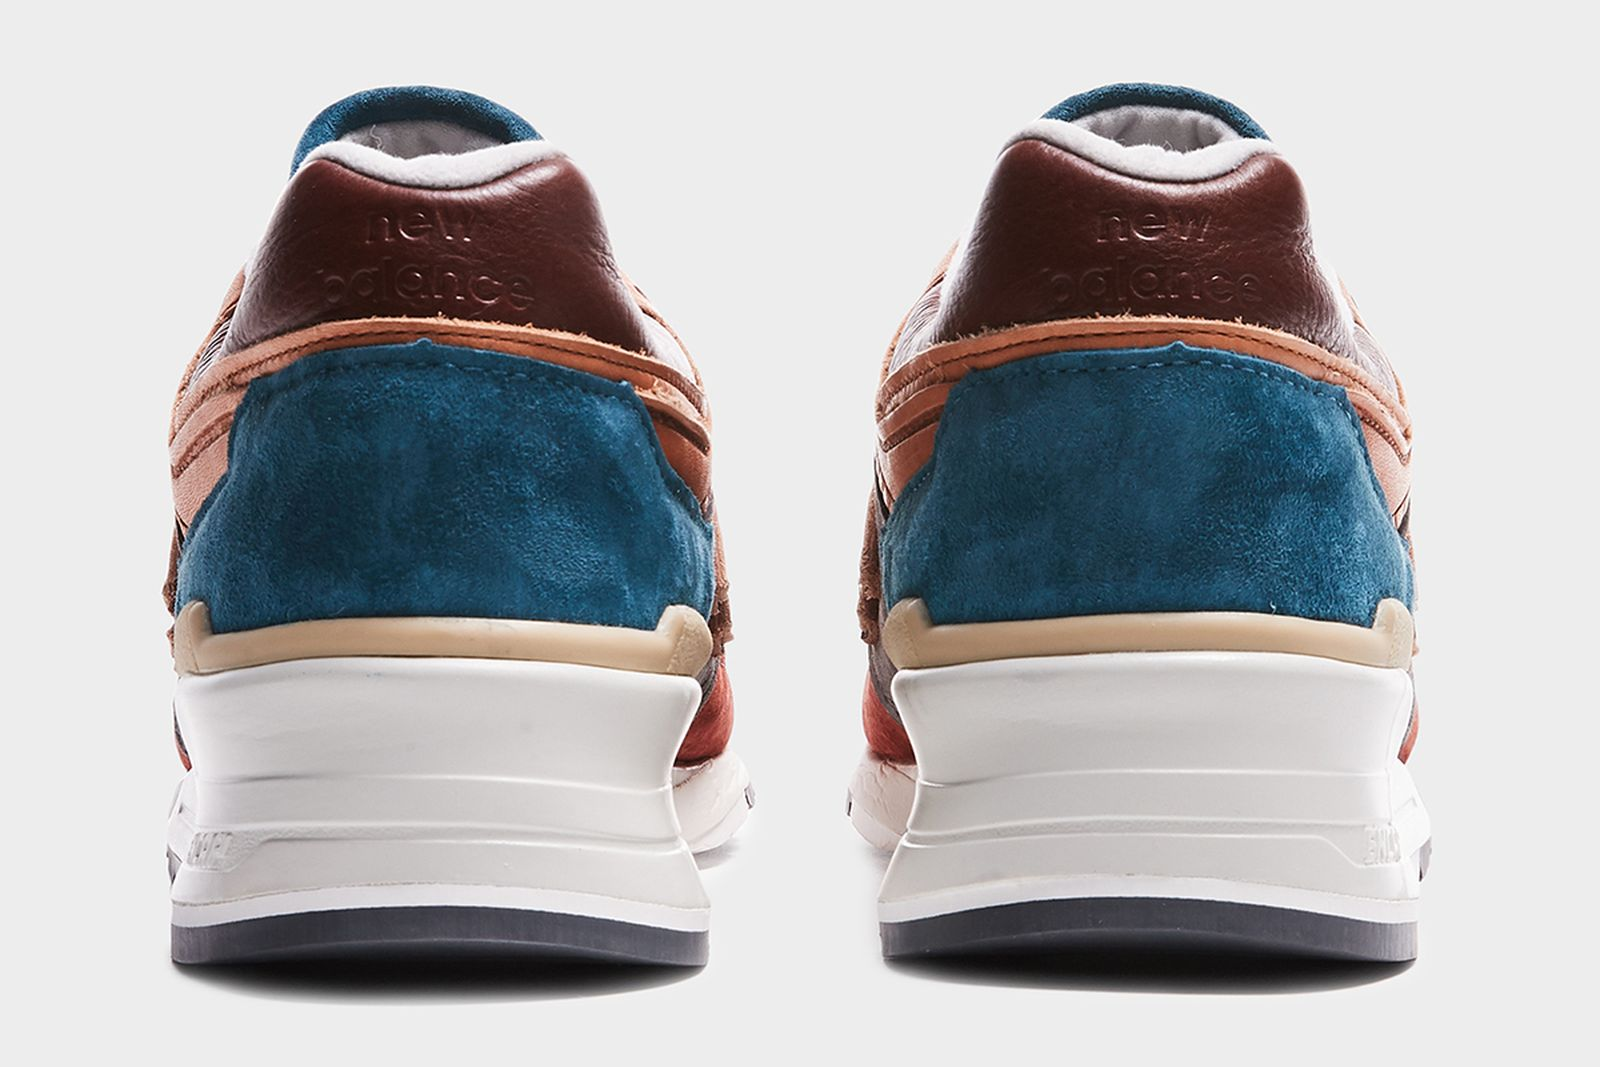 todd-snyder-new-balance-997-hudson-ny-release-date-price-05